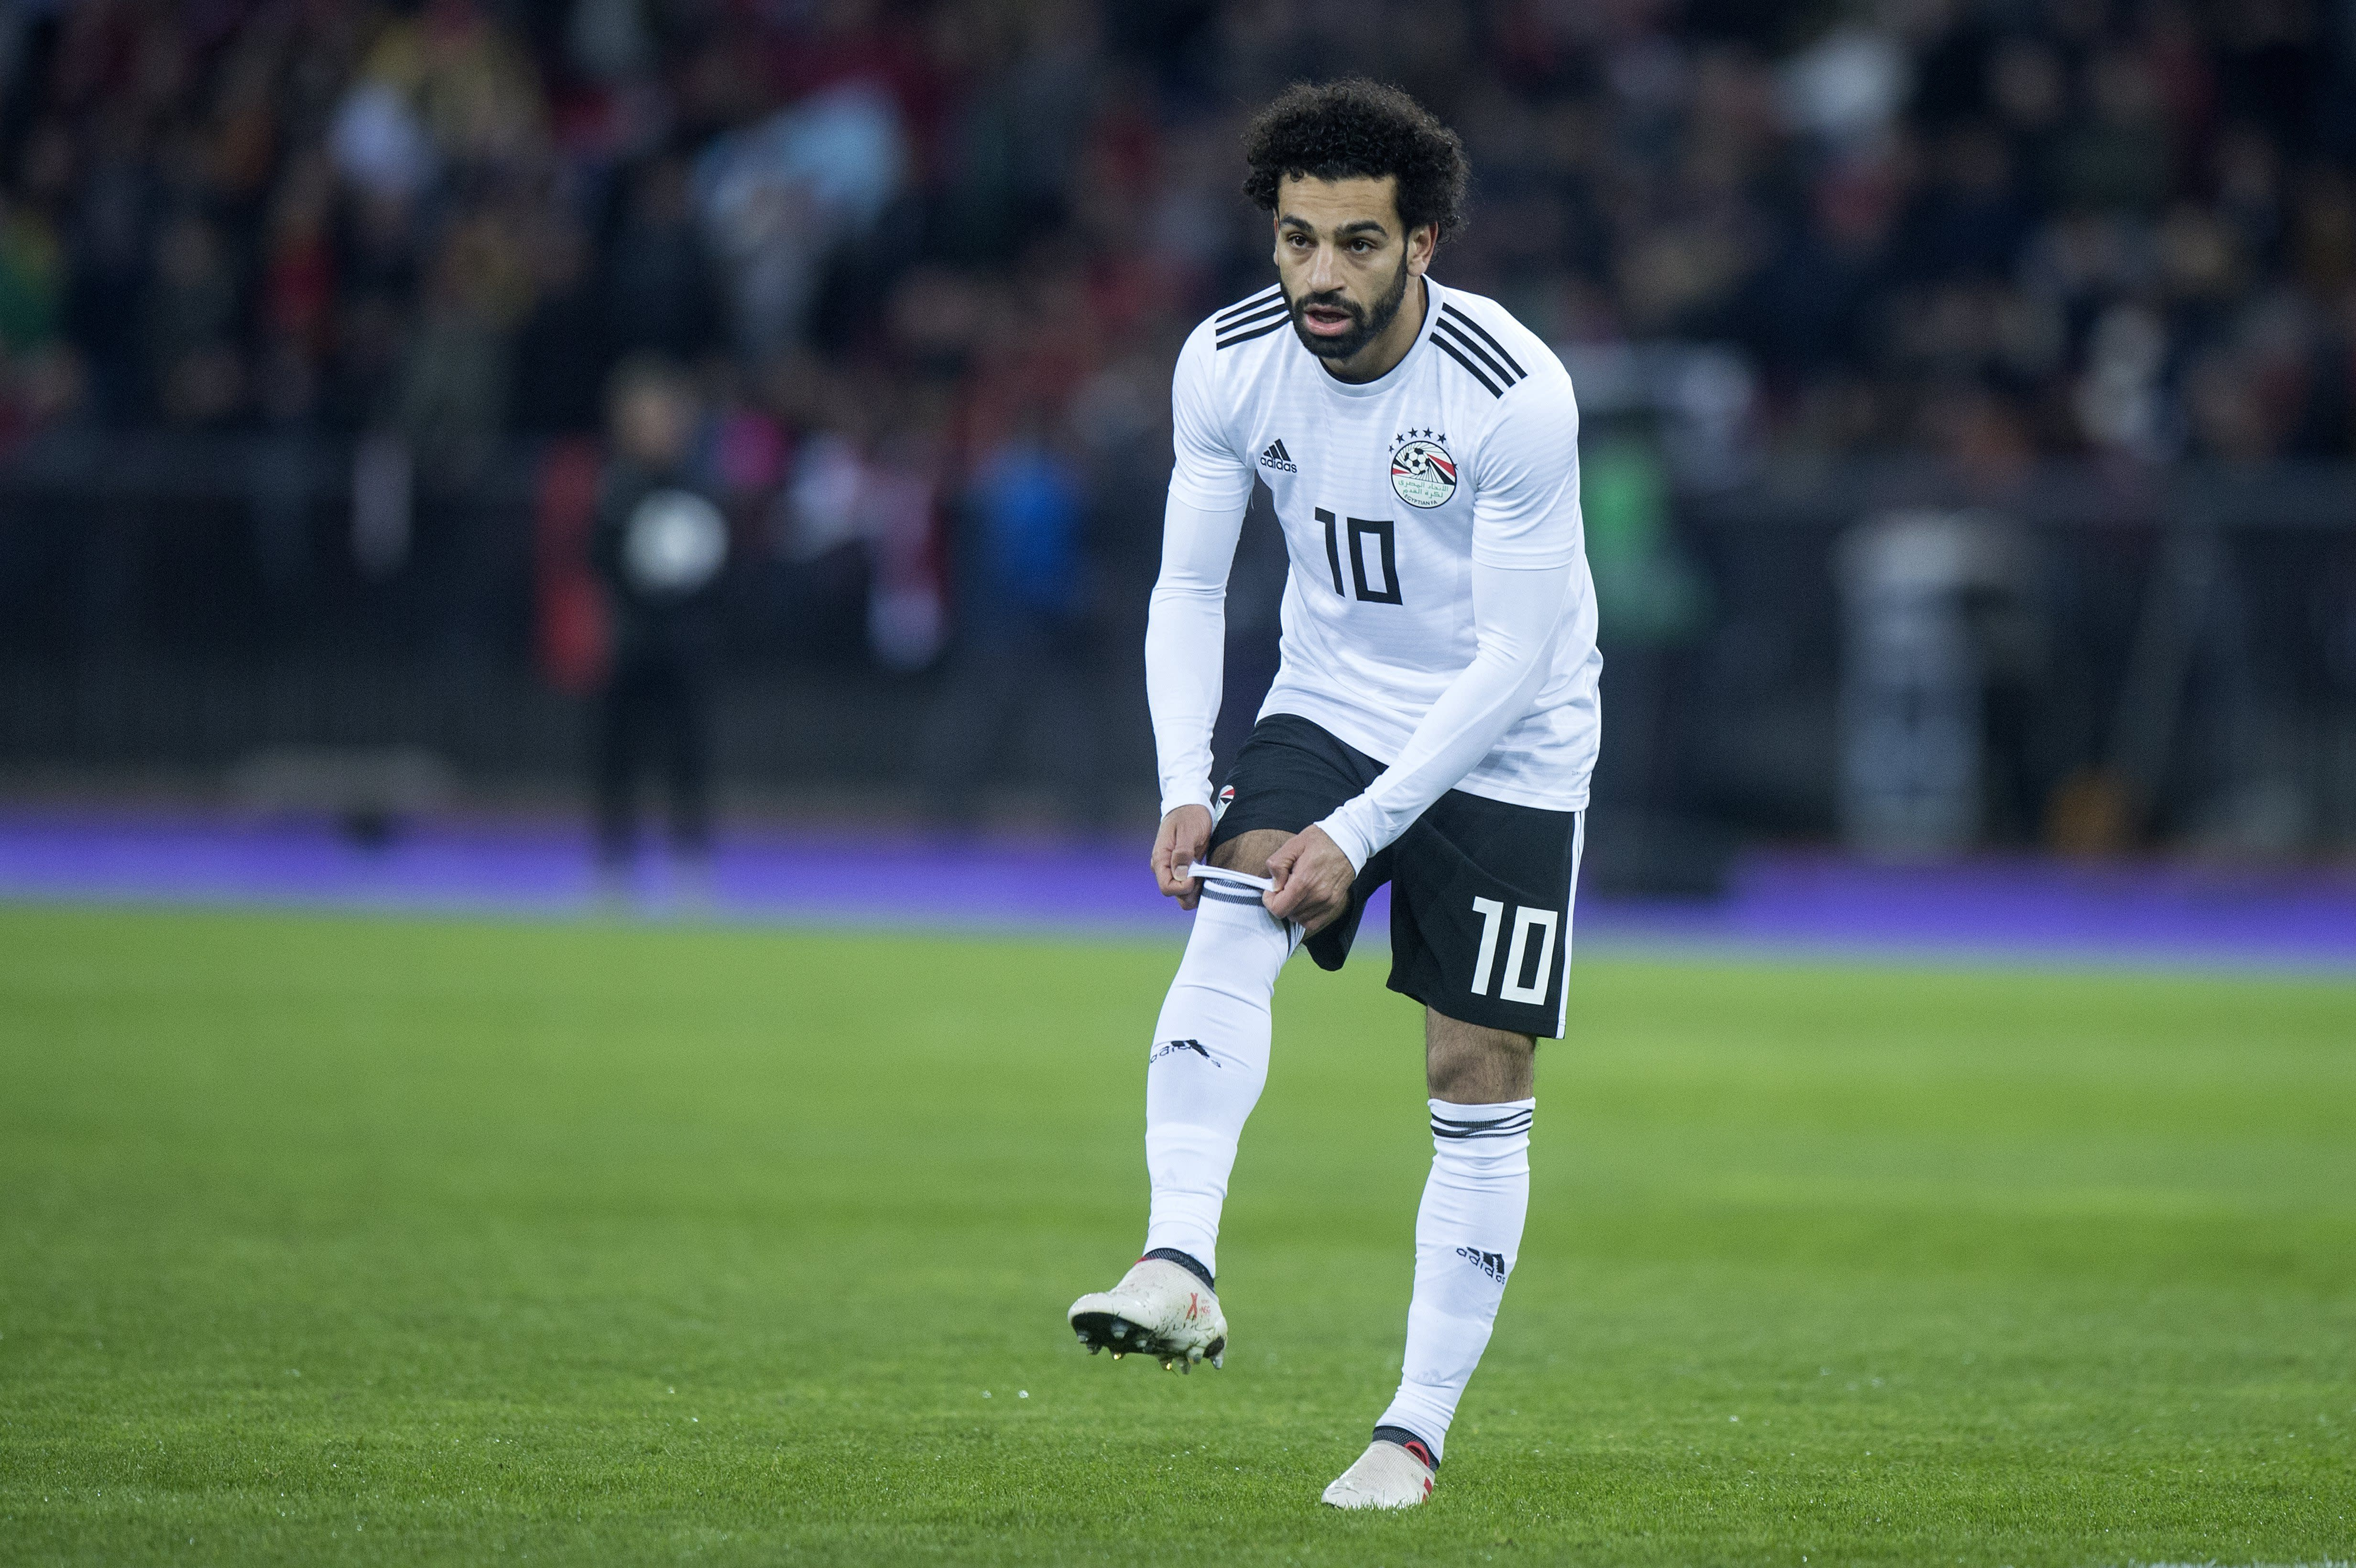 newest 27a28 8f8ec World Cup 2018 team preview: Egypt will need more than just ...